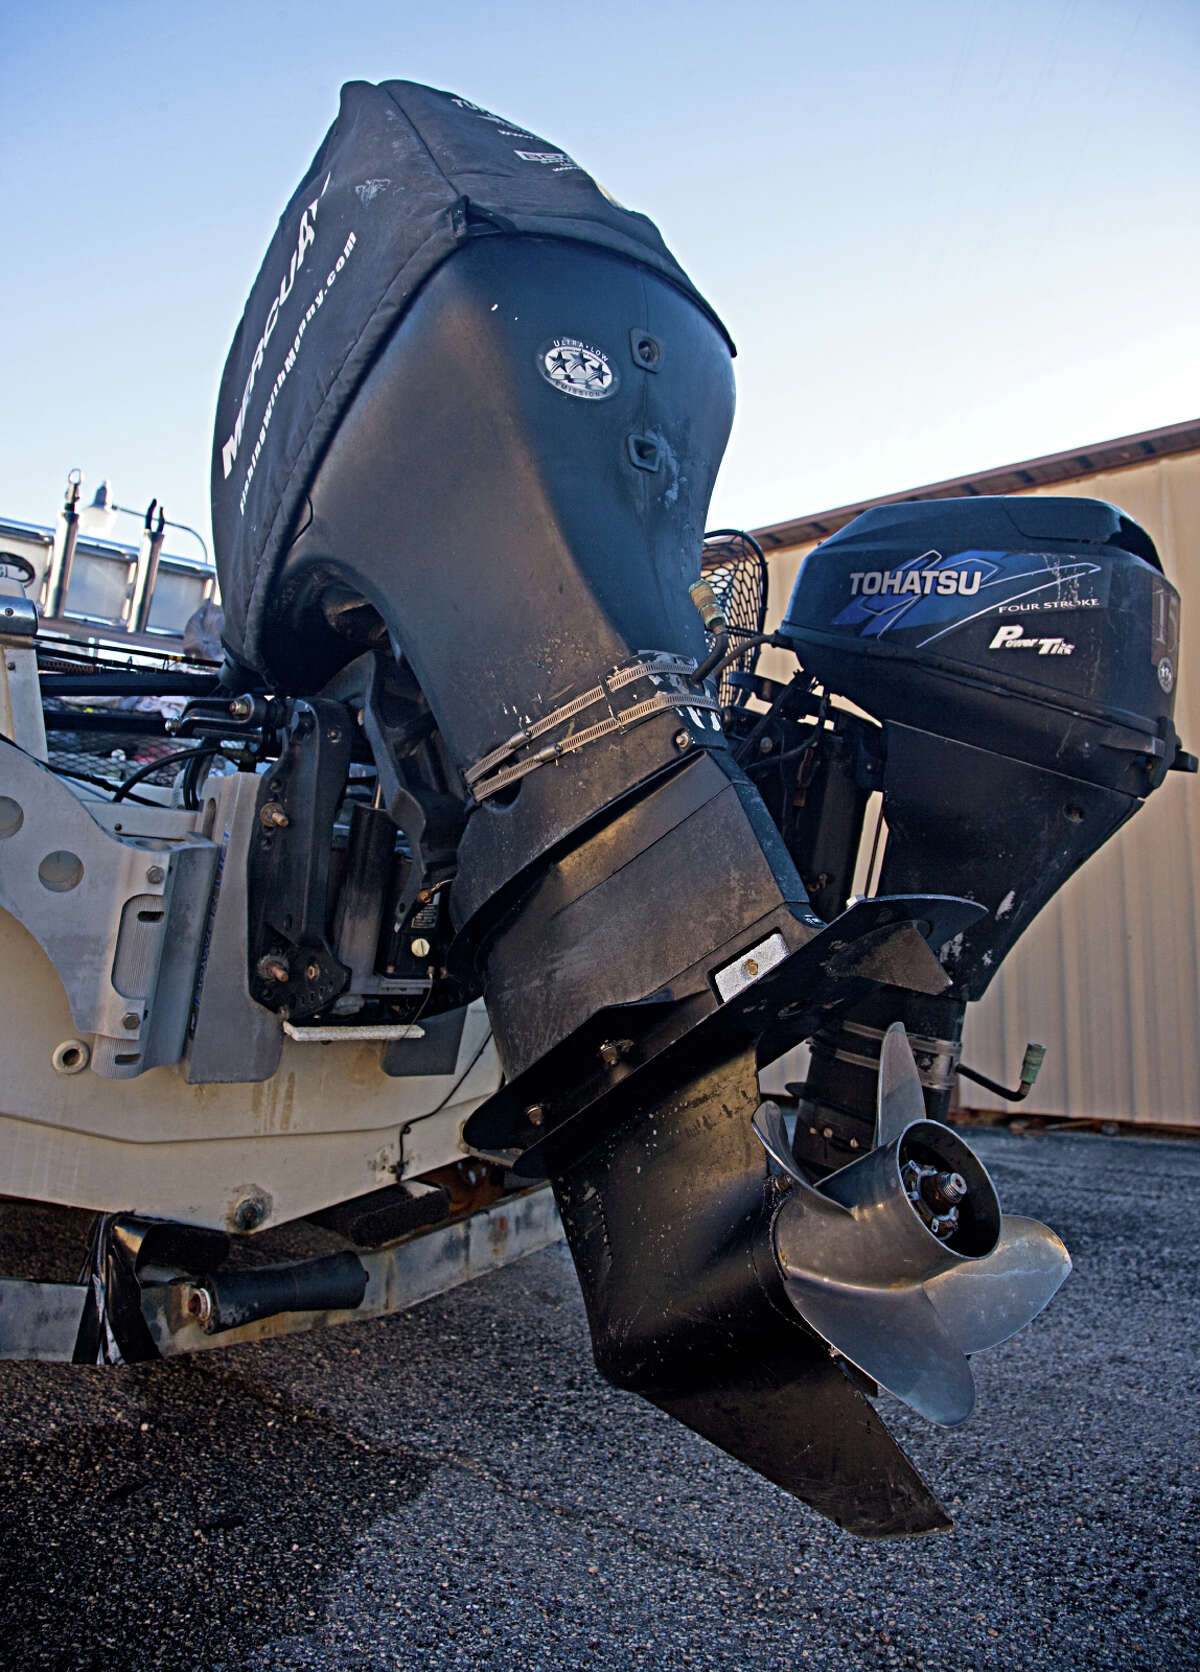 Before a boat is stored for the winter, the motor requires some maintenance to ensure that it will be ready to go in the spring, including a tune-up, fresh gear lube in the lower unit and removal of the propeller to check the shaft for fishing line, which can damage seals.